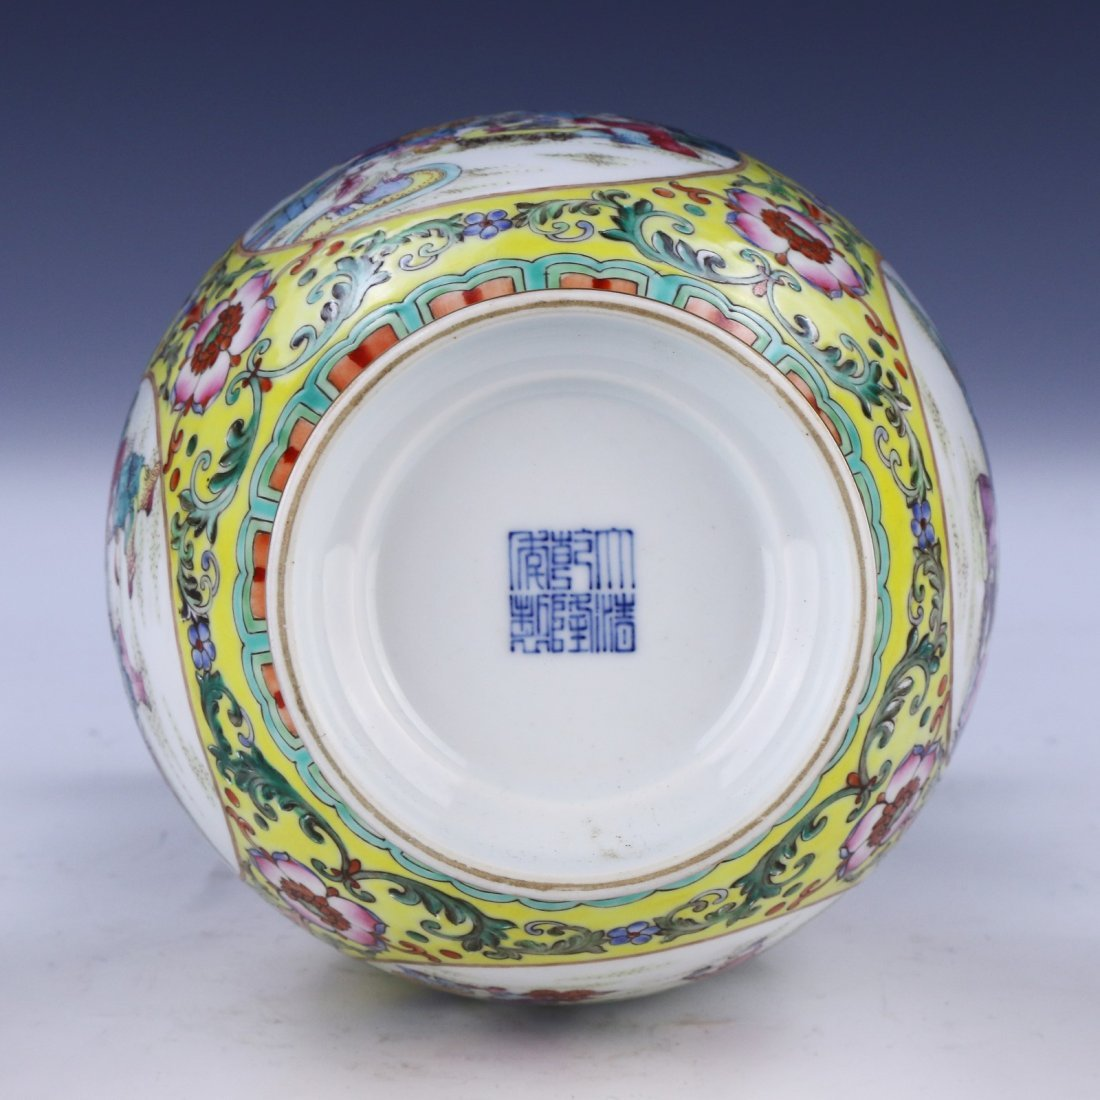 A Magnificent Chinese Famille Rose Porcelain Vase - 6